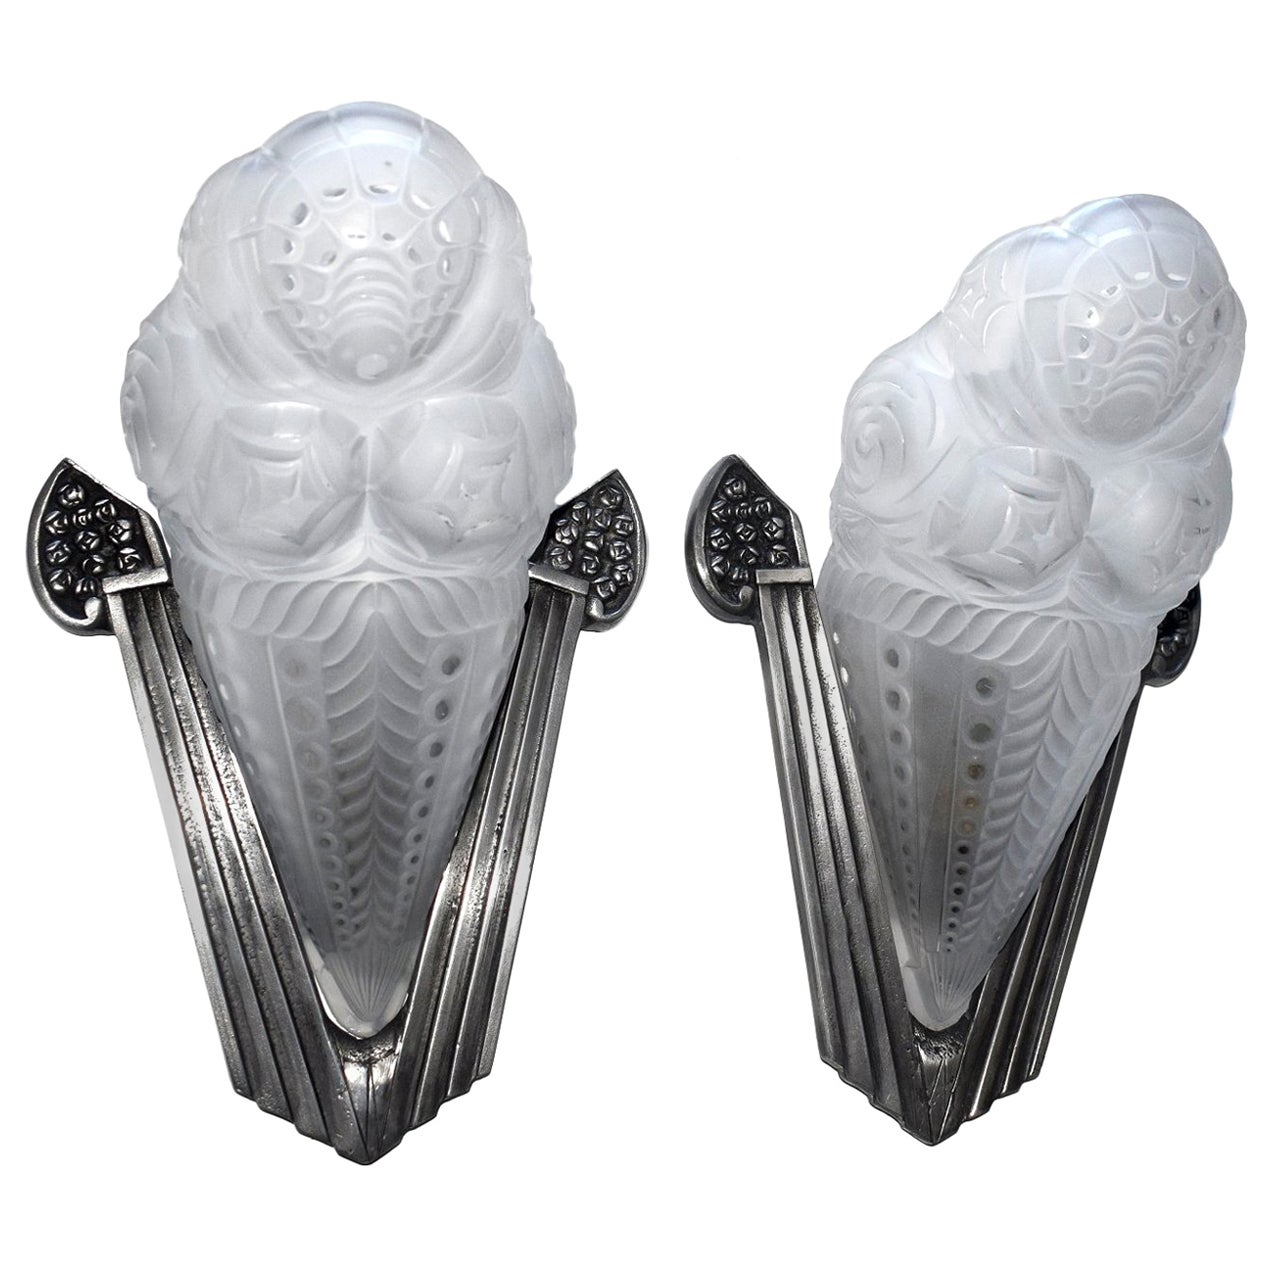 French Art Deco Pair of Wall Light Sconces